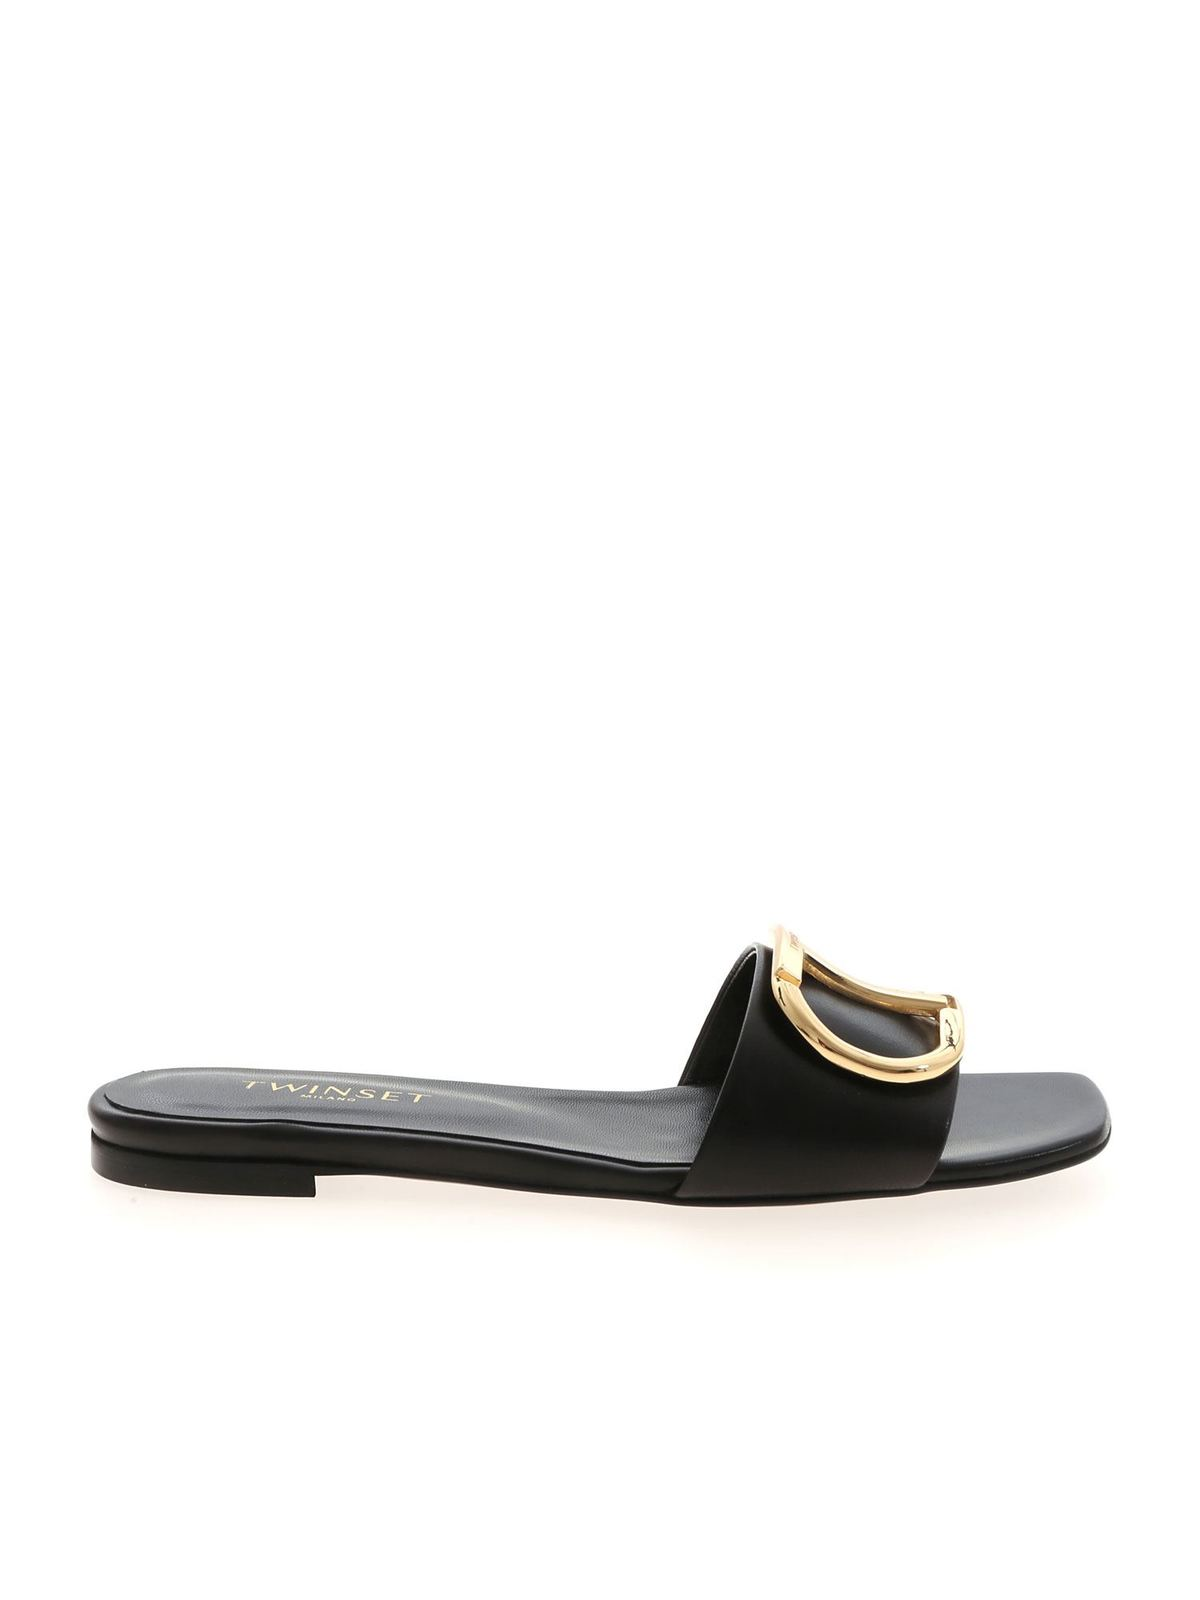 Twinset GOLD-COLORED DETAIL MULES IN BLACK